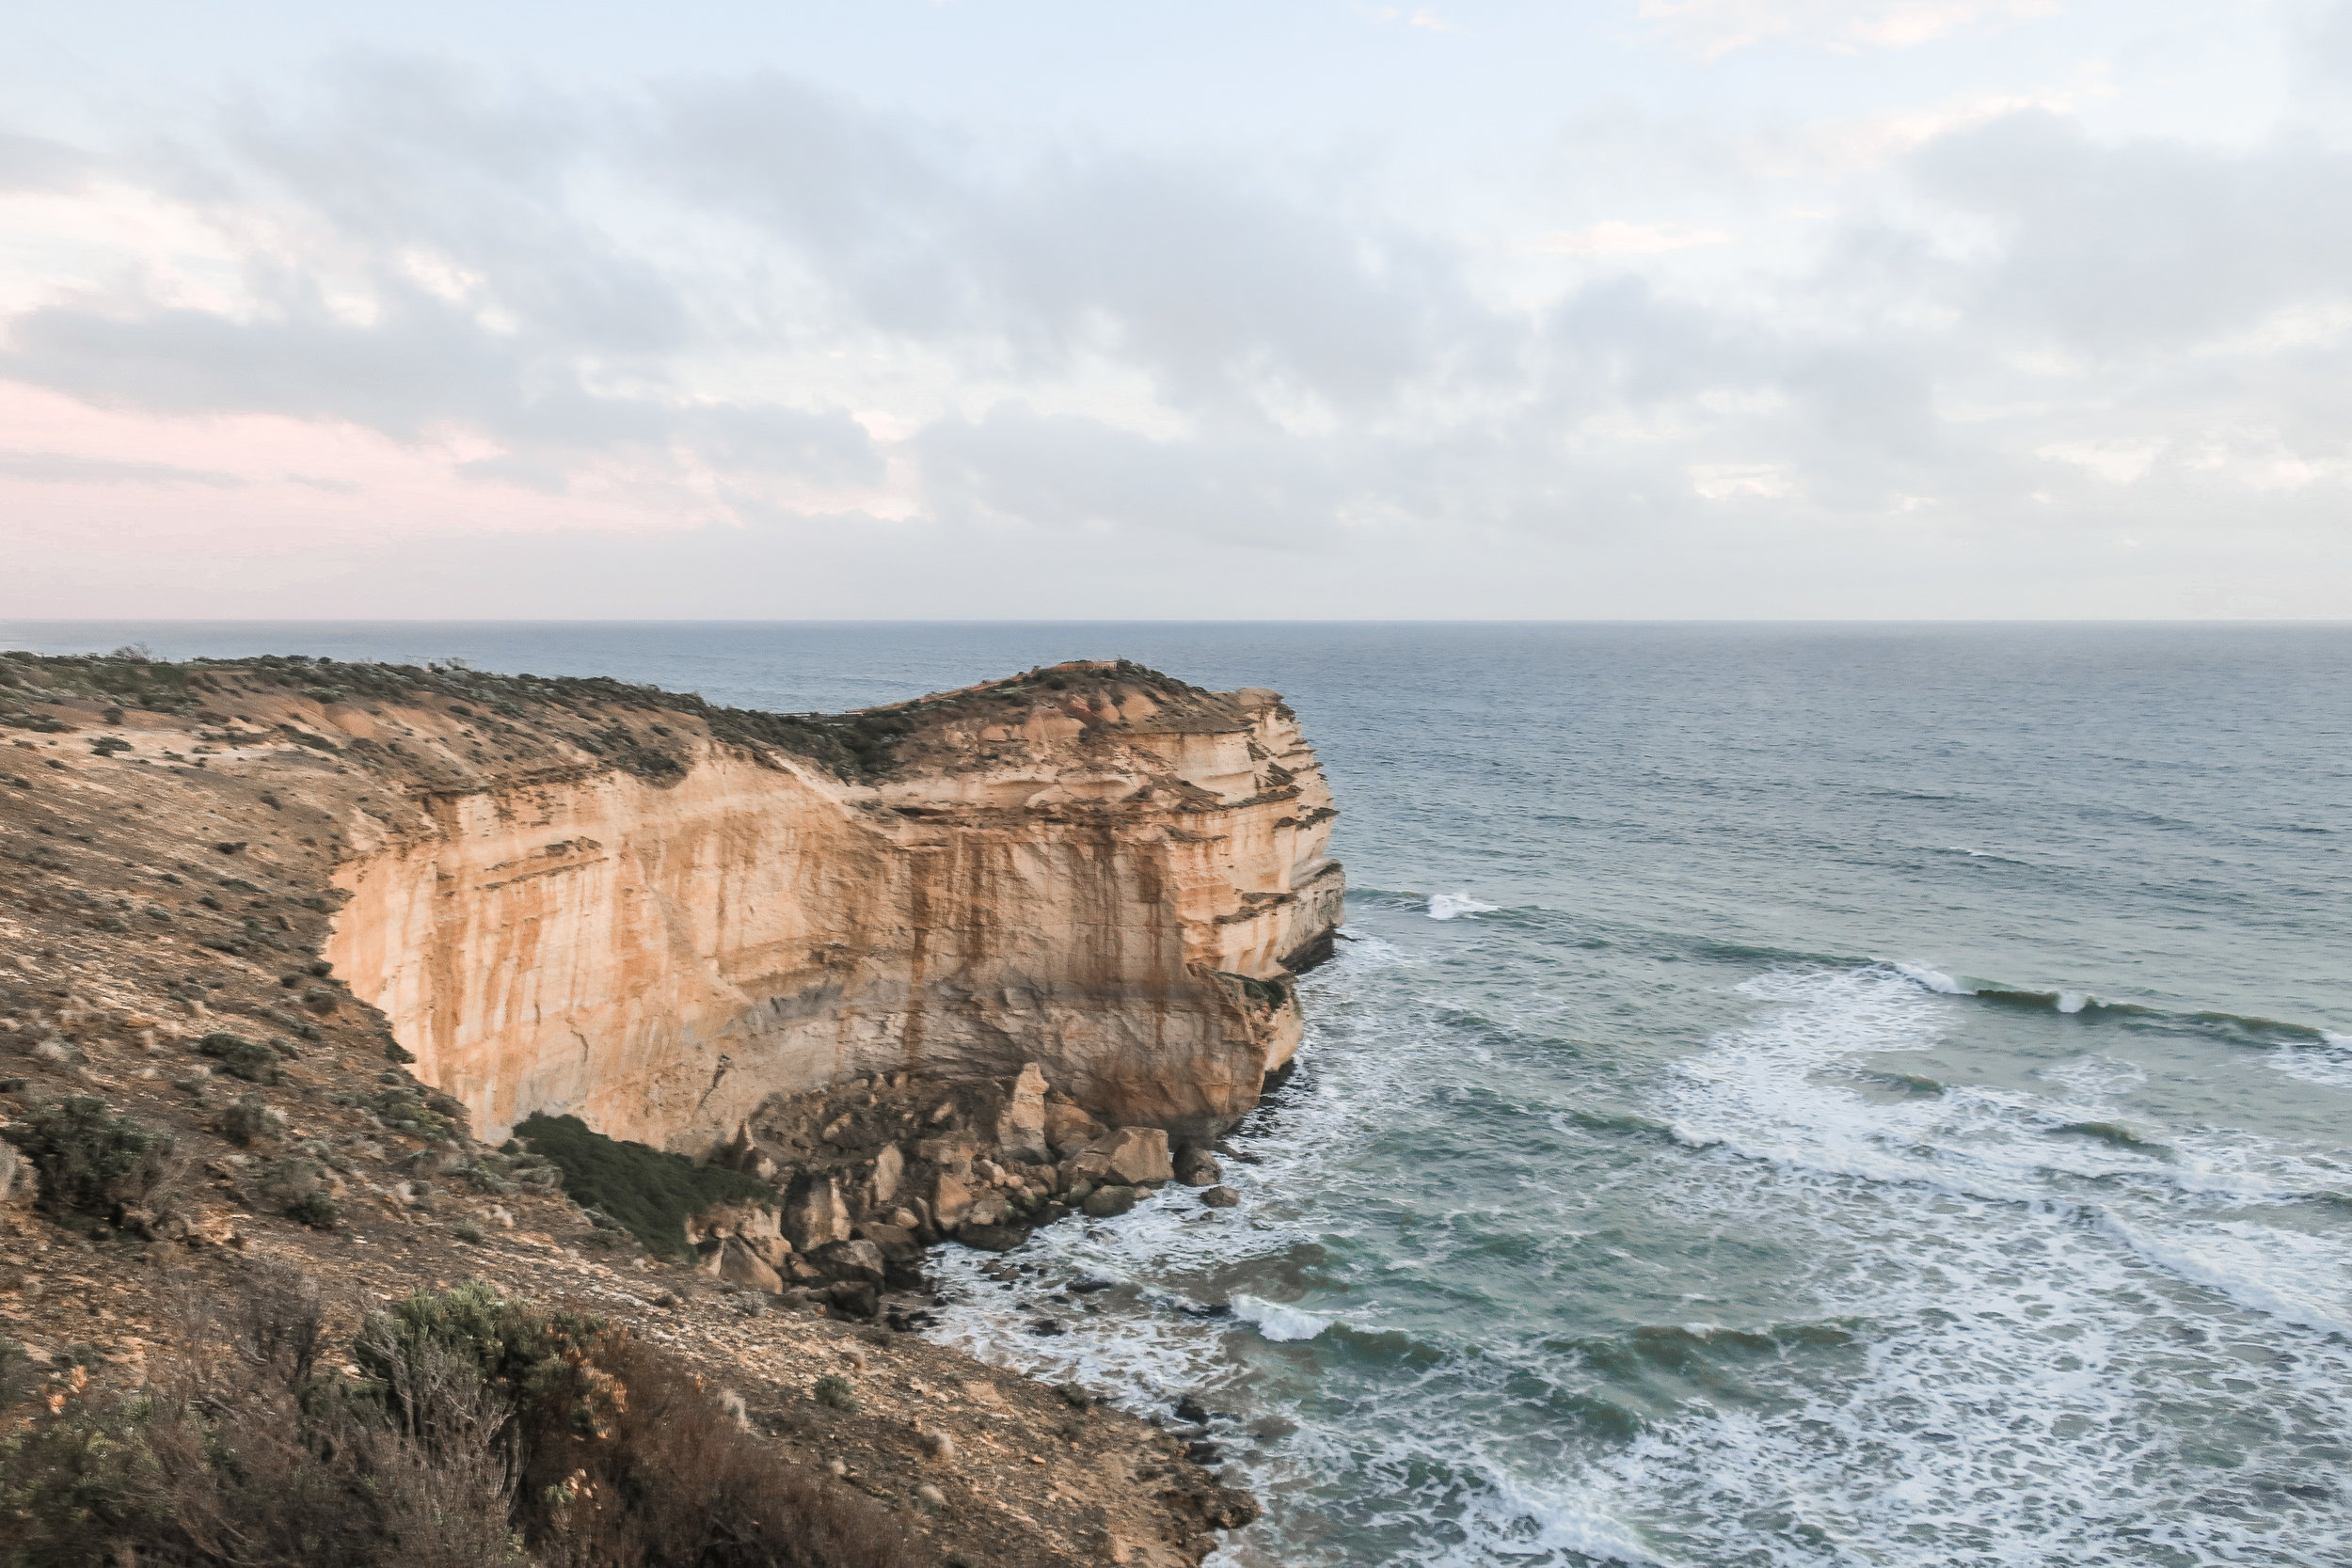 Many parts of the Great Ocean Road makes you feel like you're on the edge of the world.